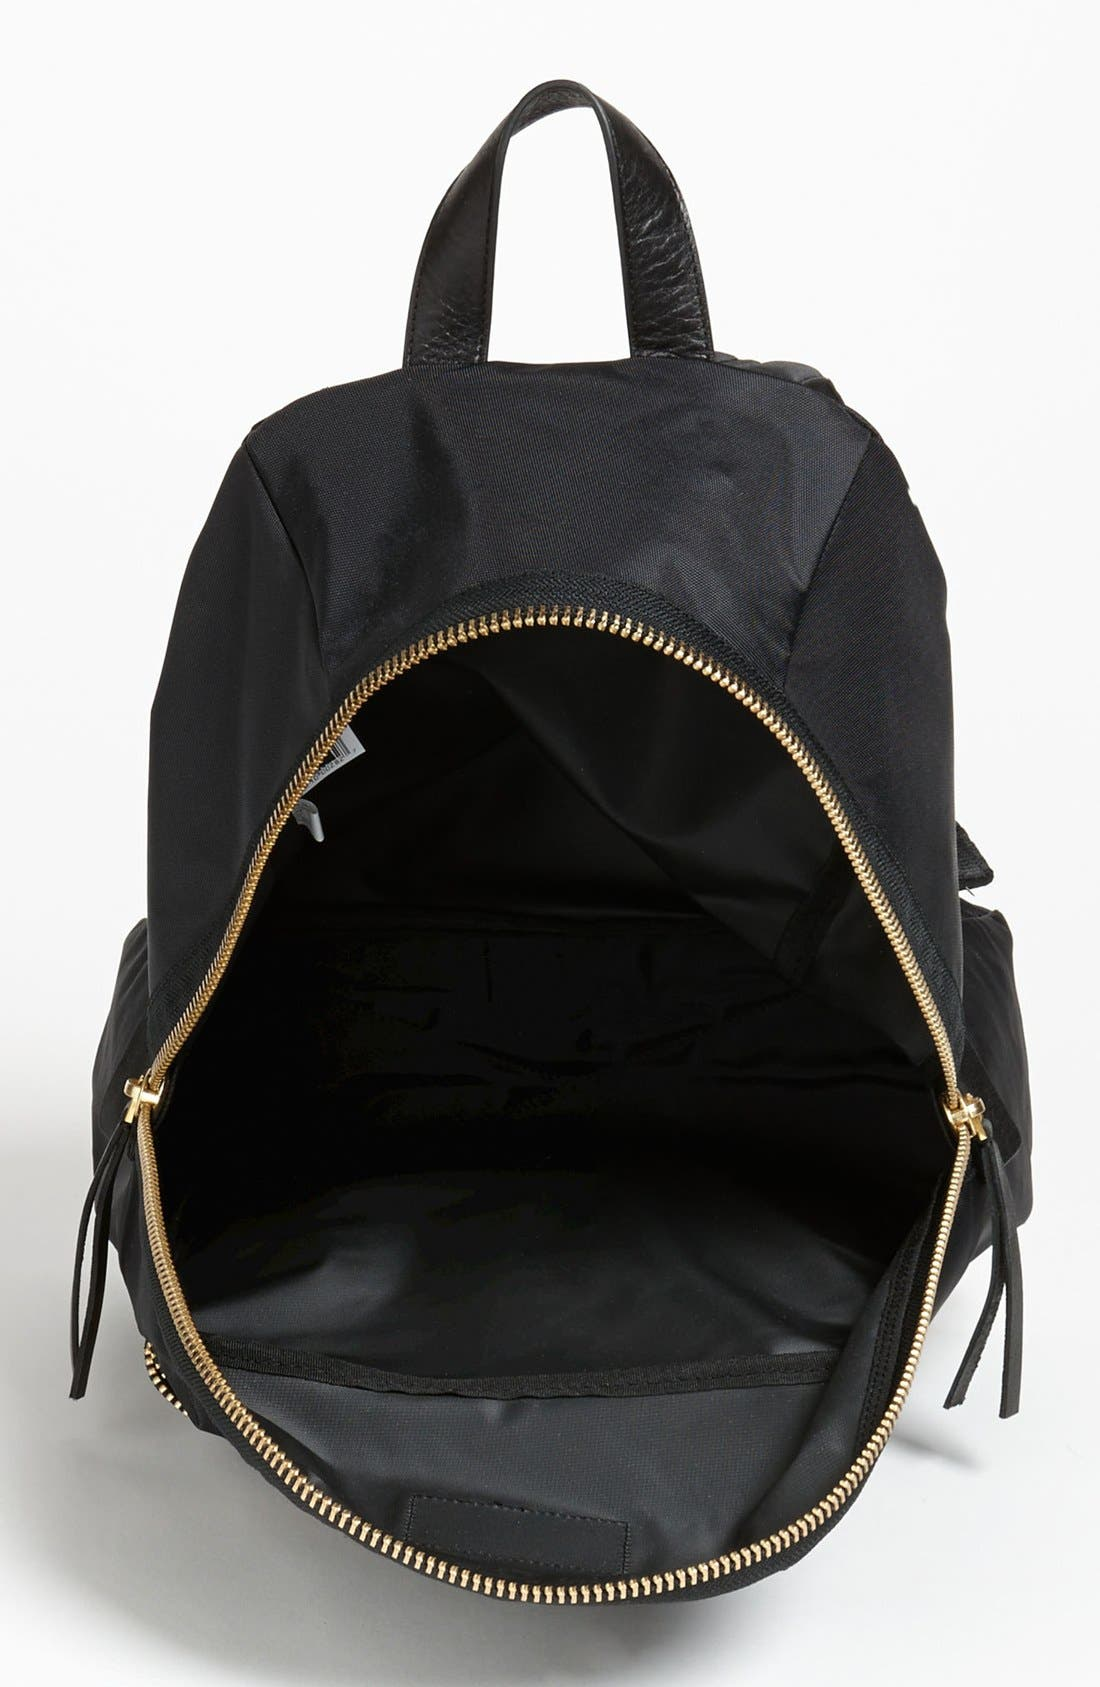 MARC BY MARC JACOBS 'Domo Arigato Packrat' Backpack,                             Alternate thumbnail 2, color,                             001